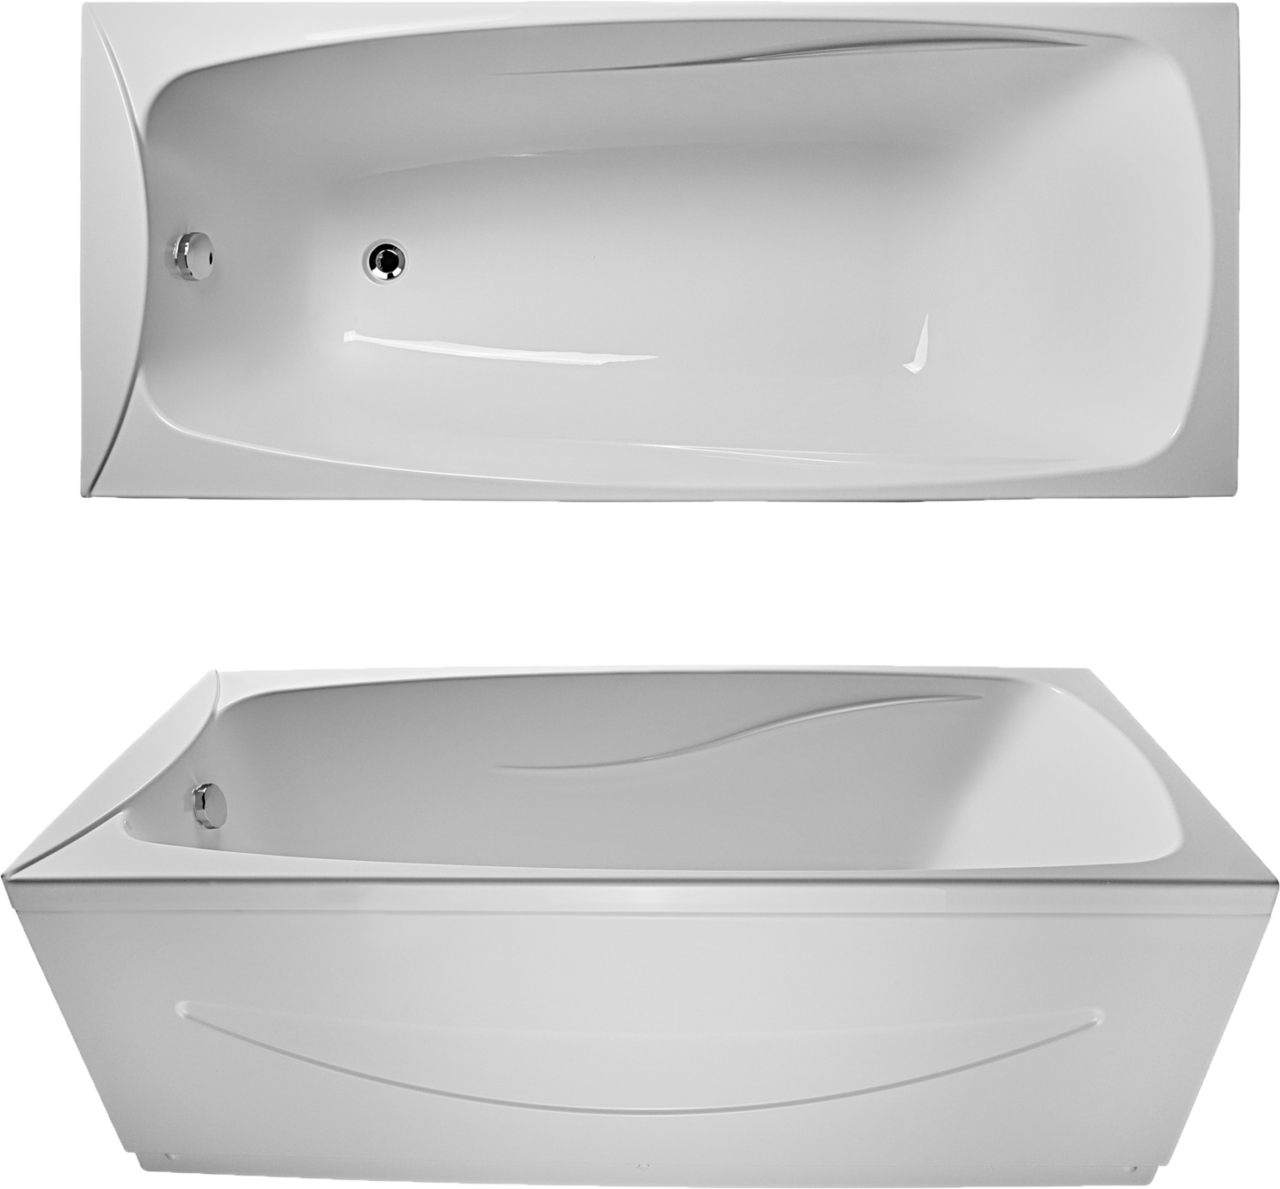 Furniture Bathtub Png image #44787